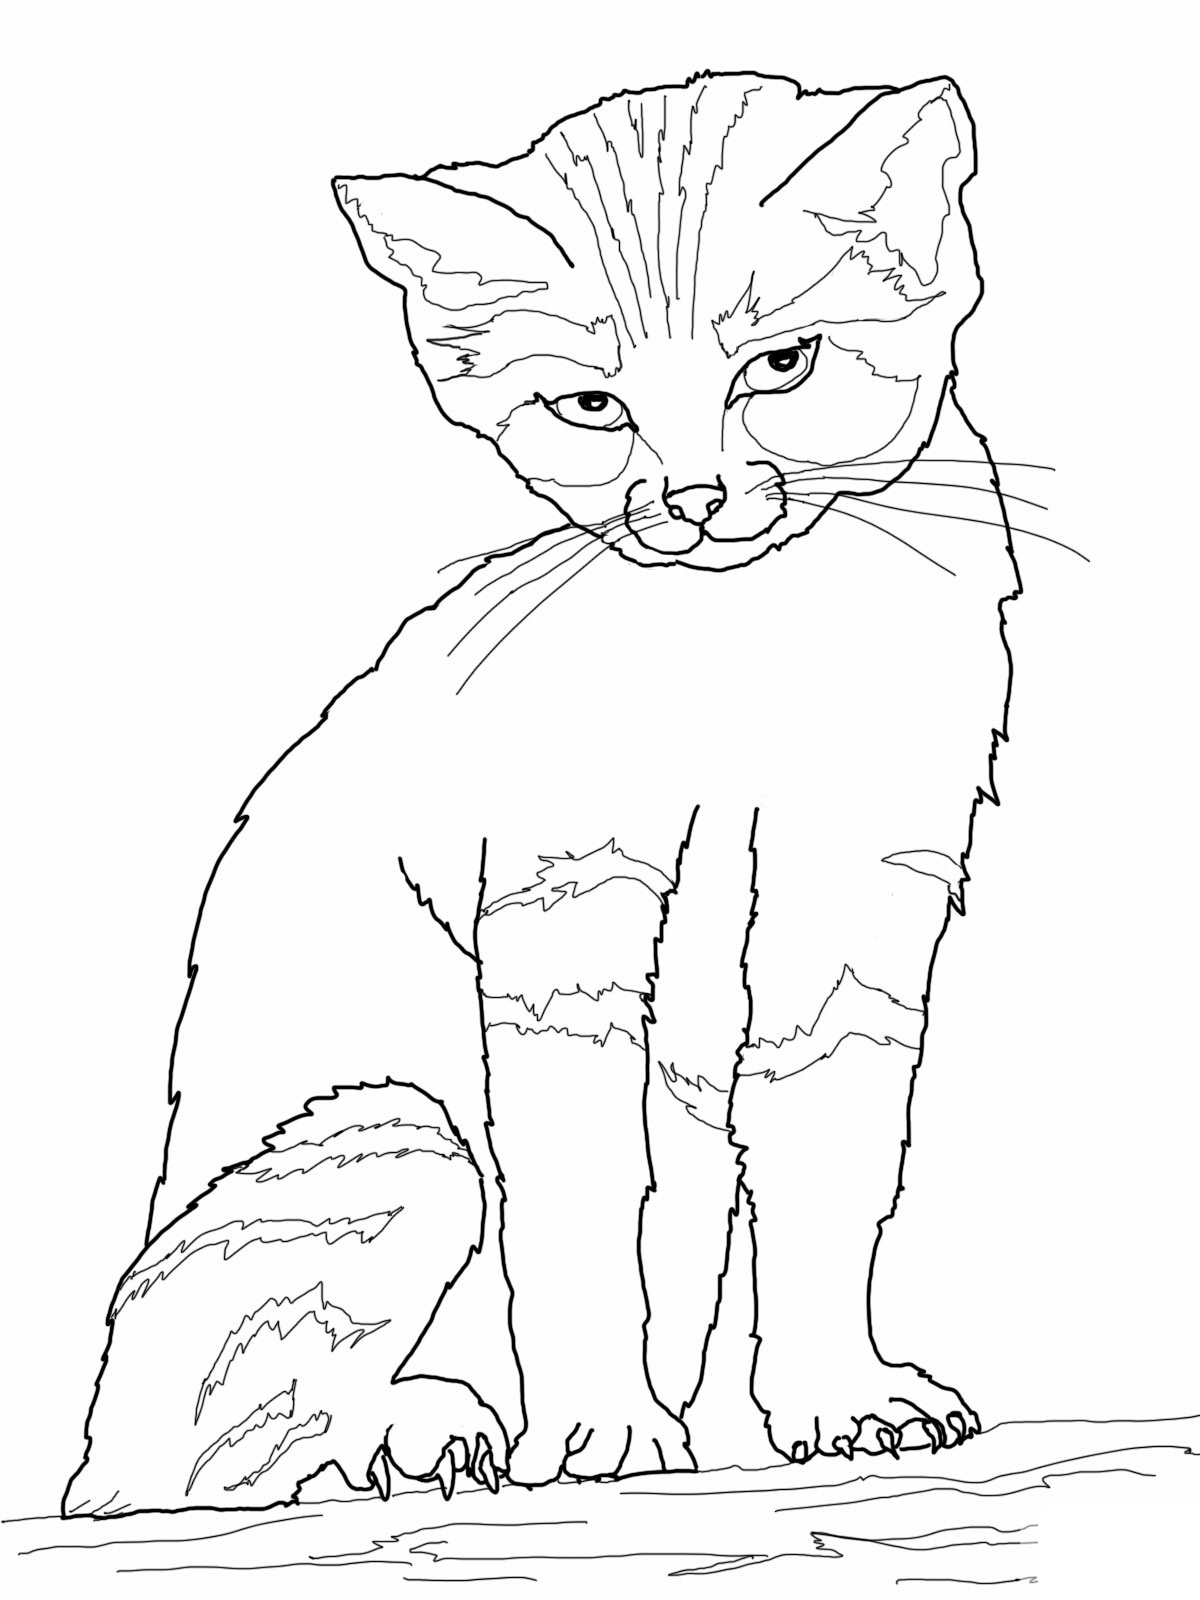 Free Printable Cat Coloring Pages For Kids Cat Printable Coloring Pages